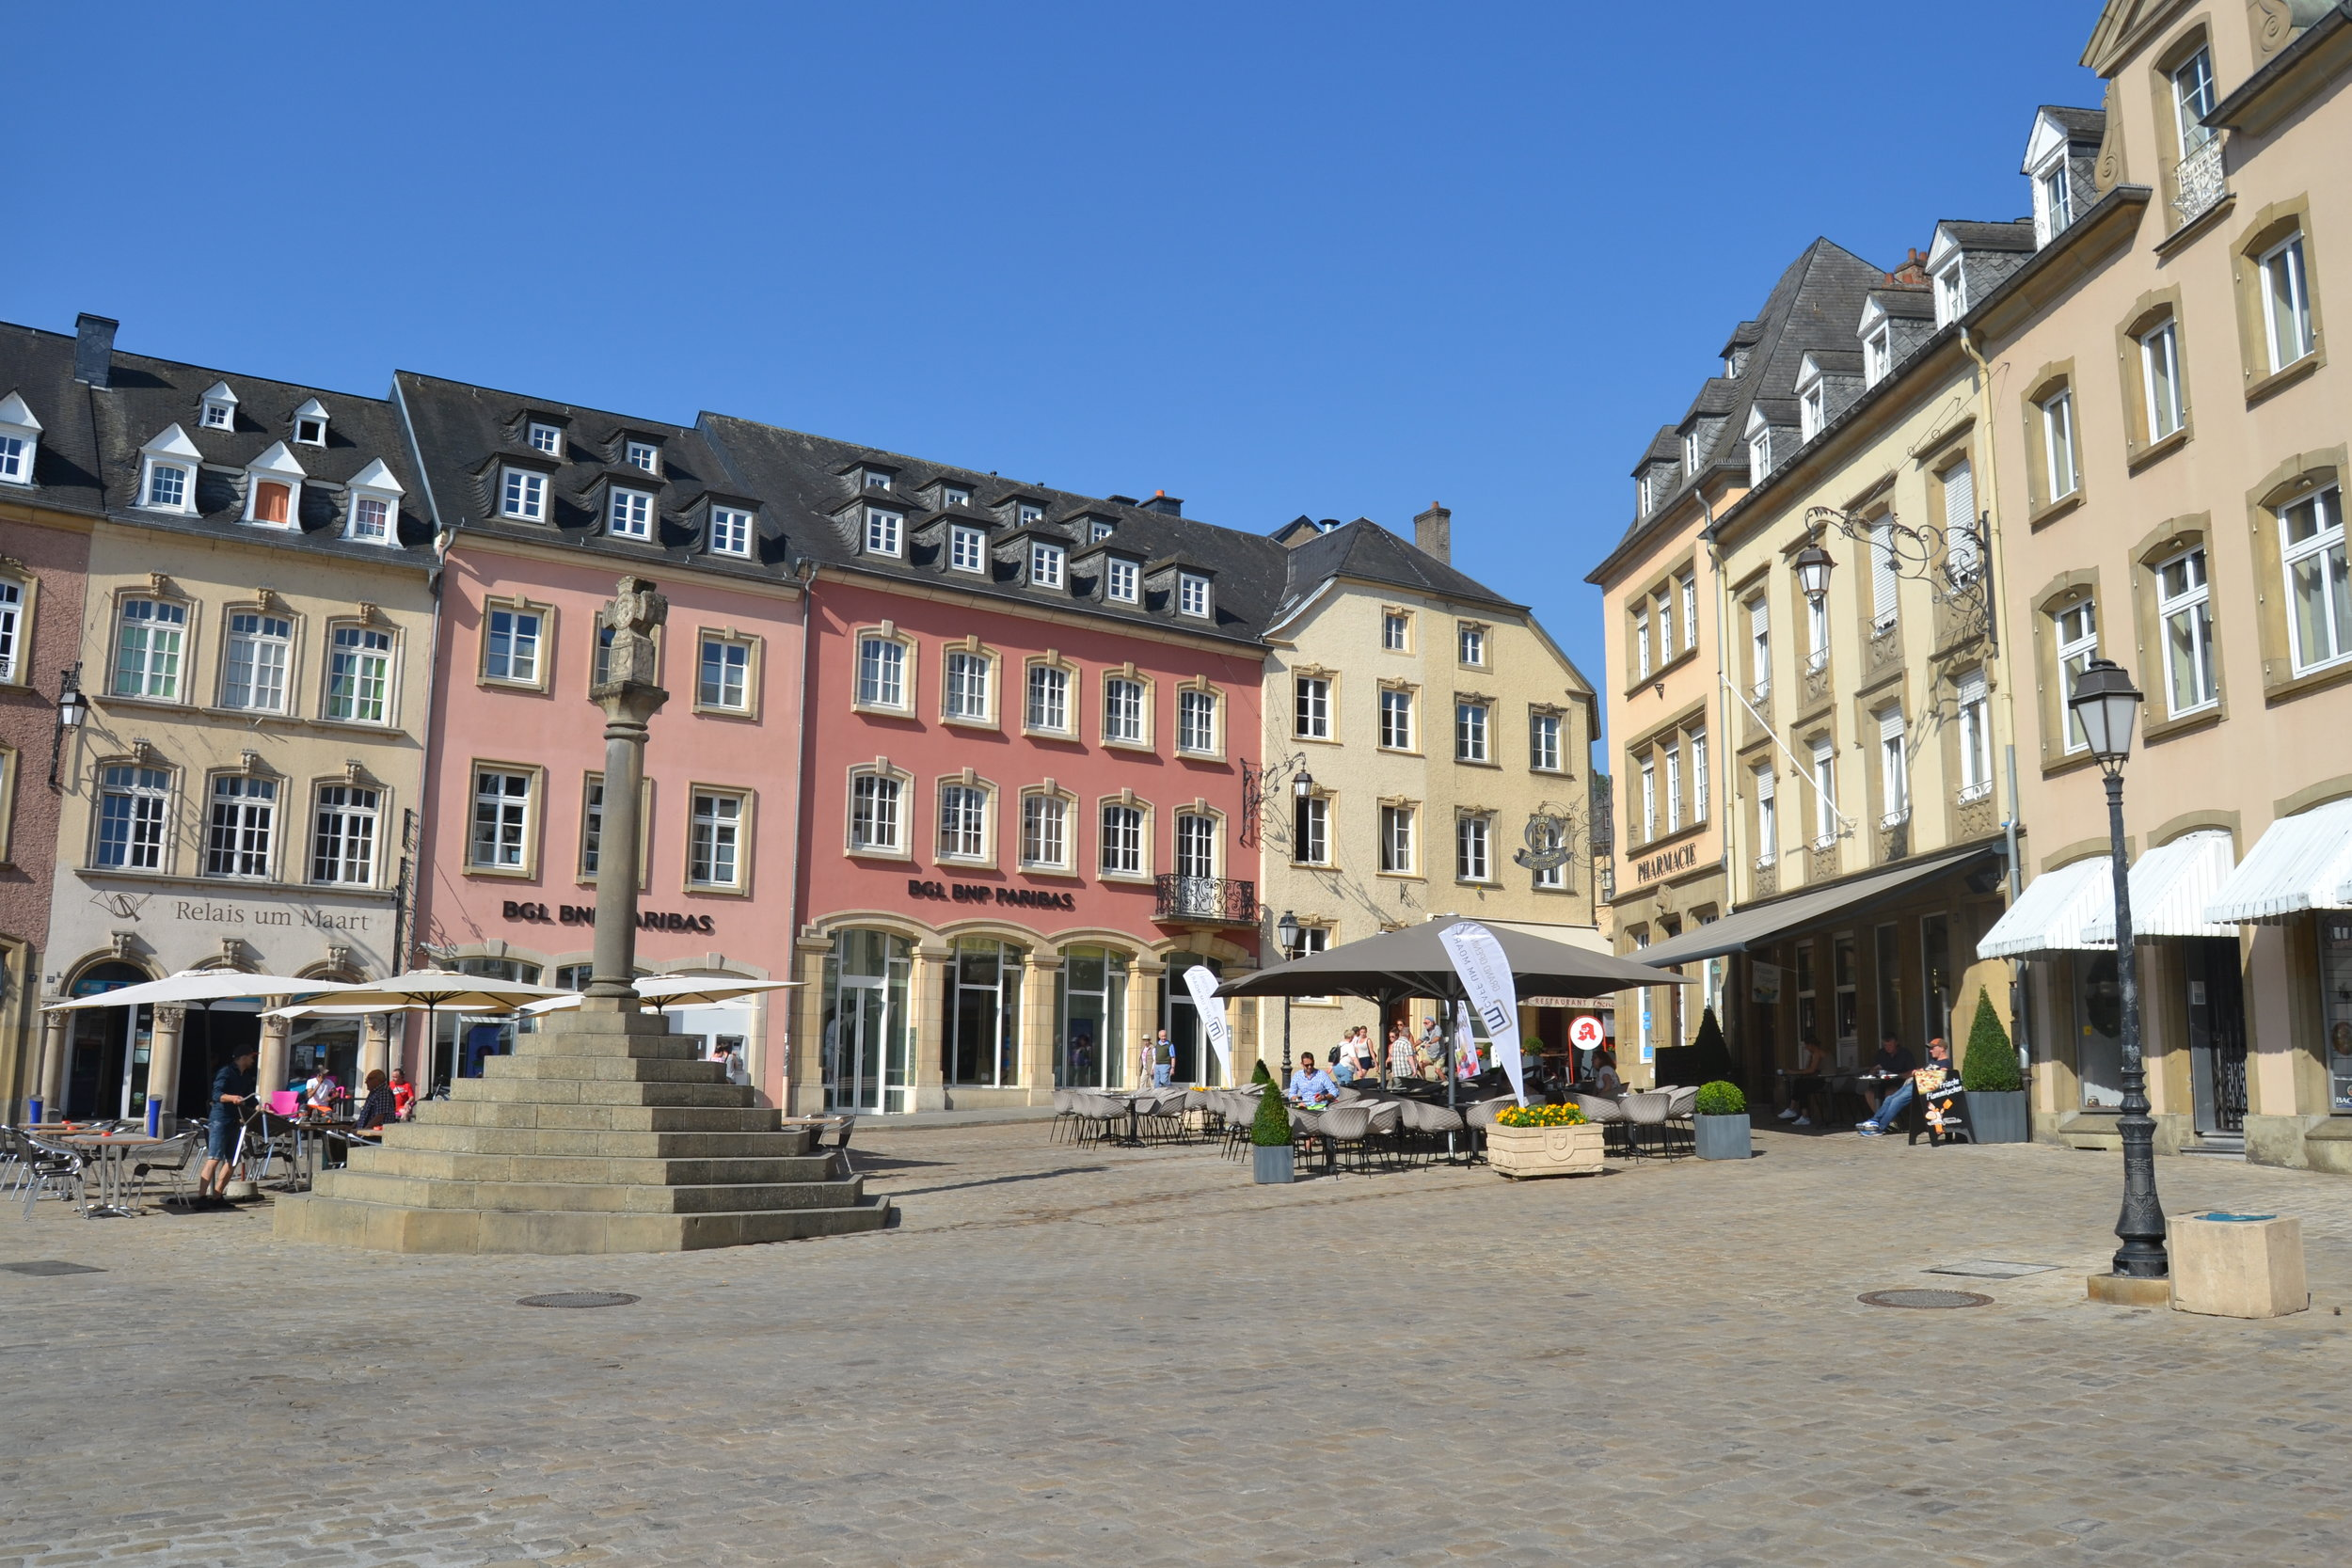 The town square of Echternach, Luxembourg